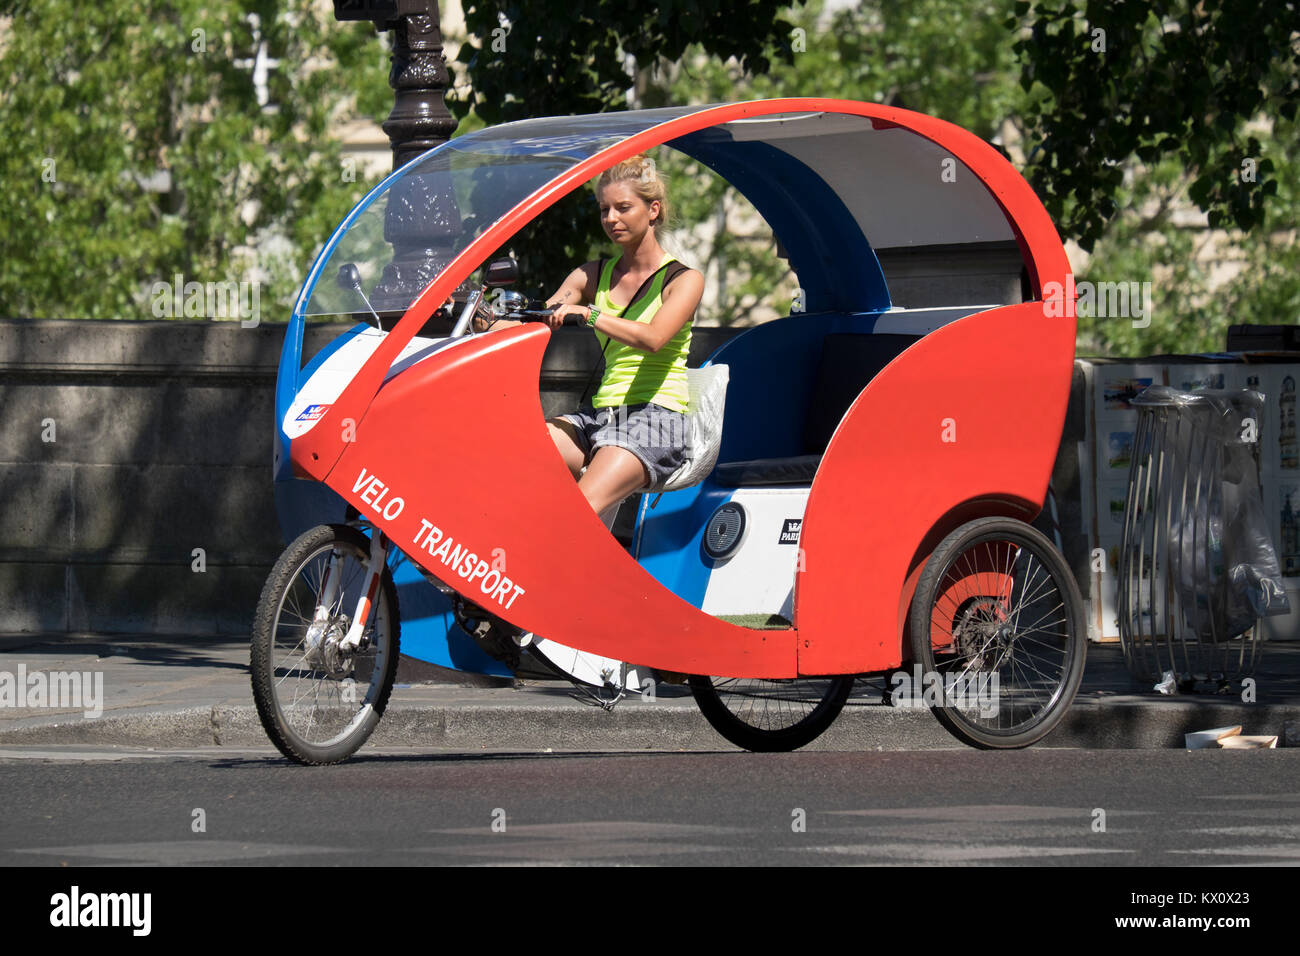 Taxi For Hire Stock Photos & Taxi For Hire Stock Images - Alamy